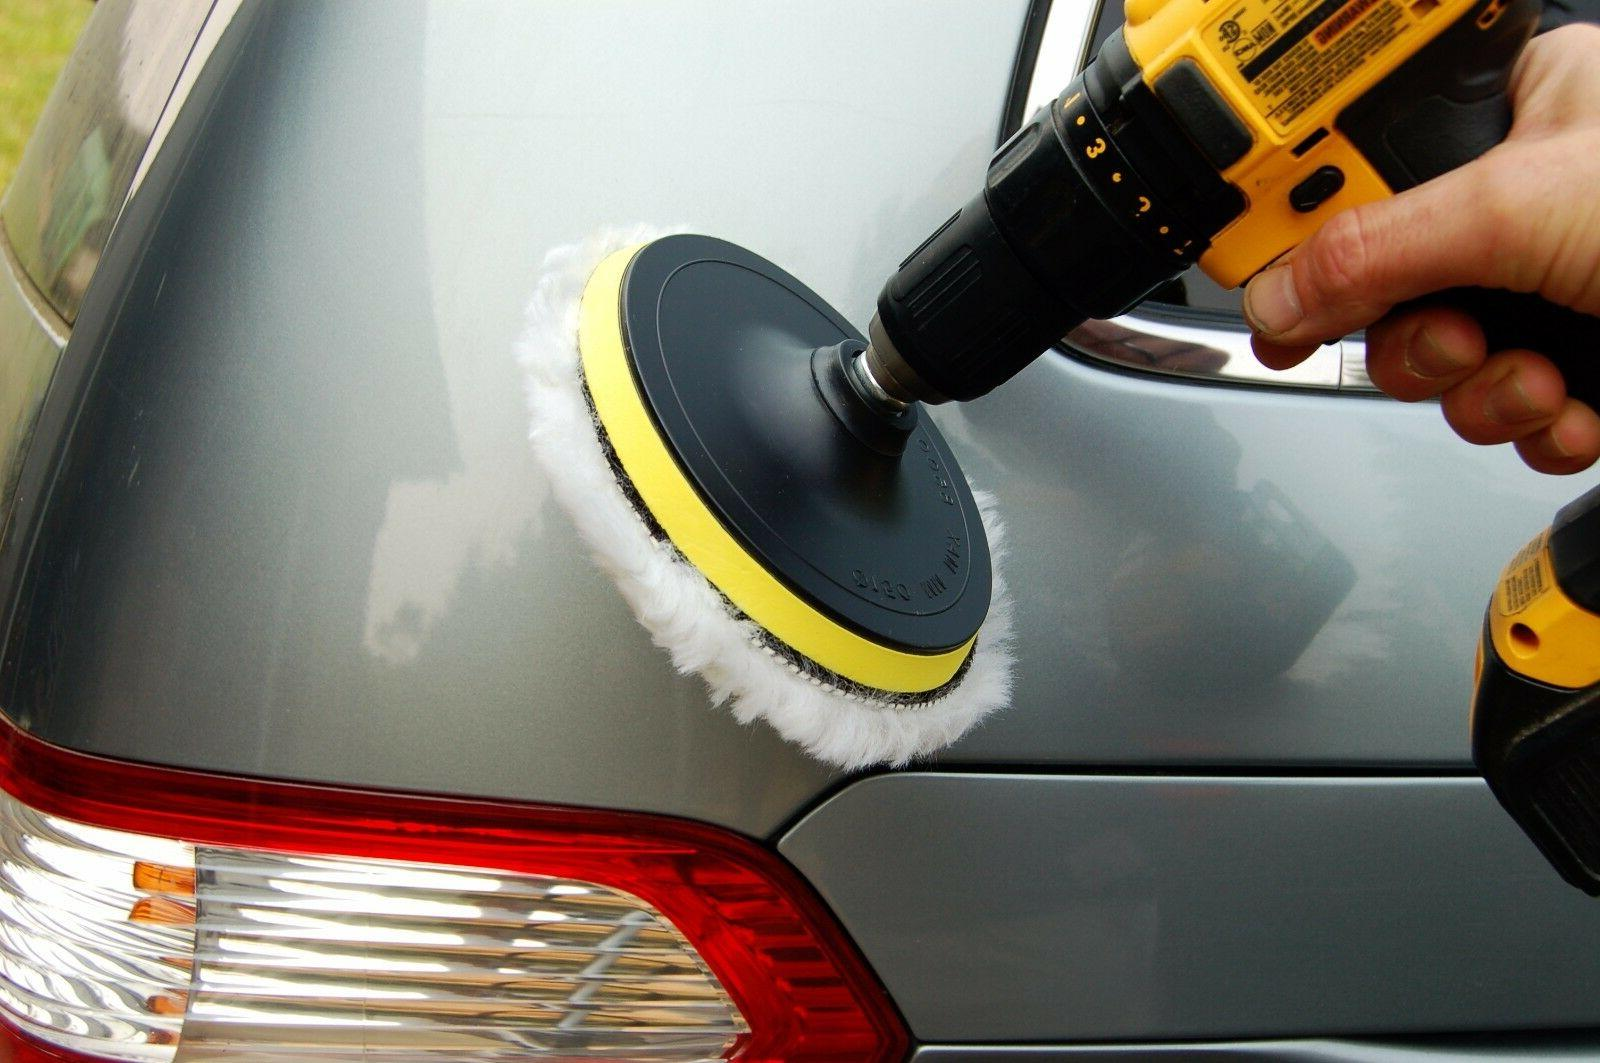 10 INCH 4PCS BONNET POLISHER POLISH PAD POLISHING BUFFING CA